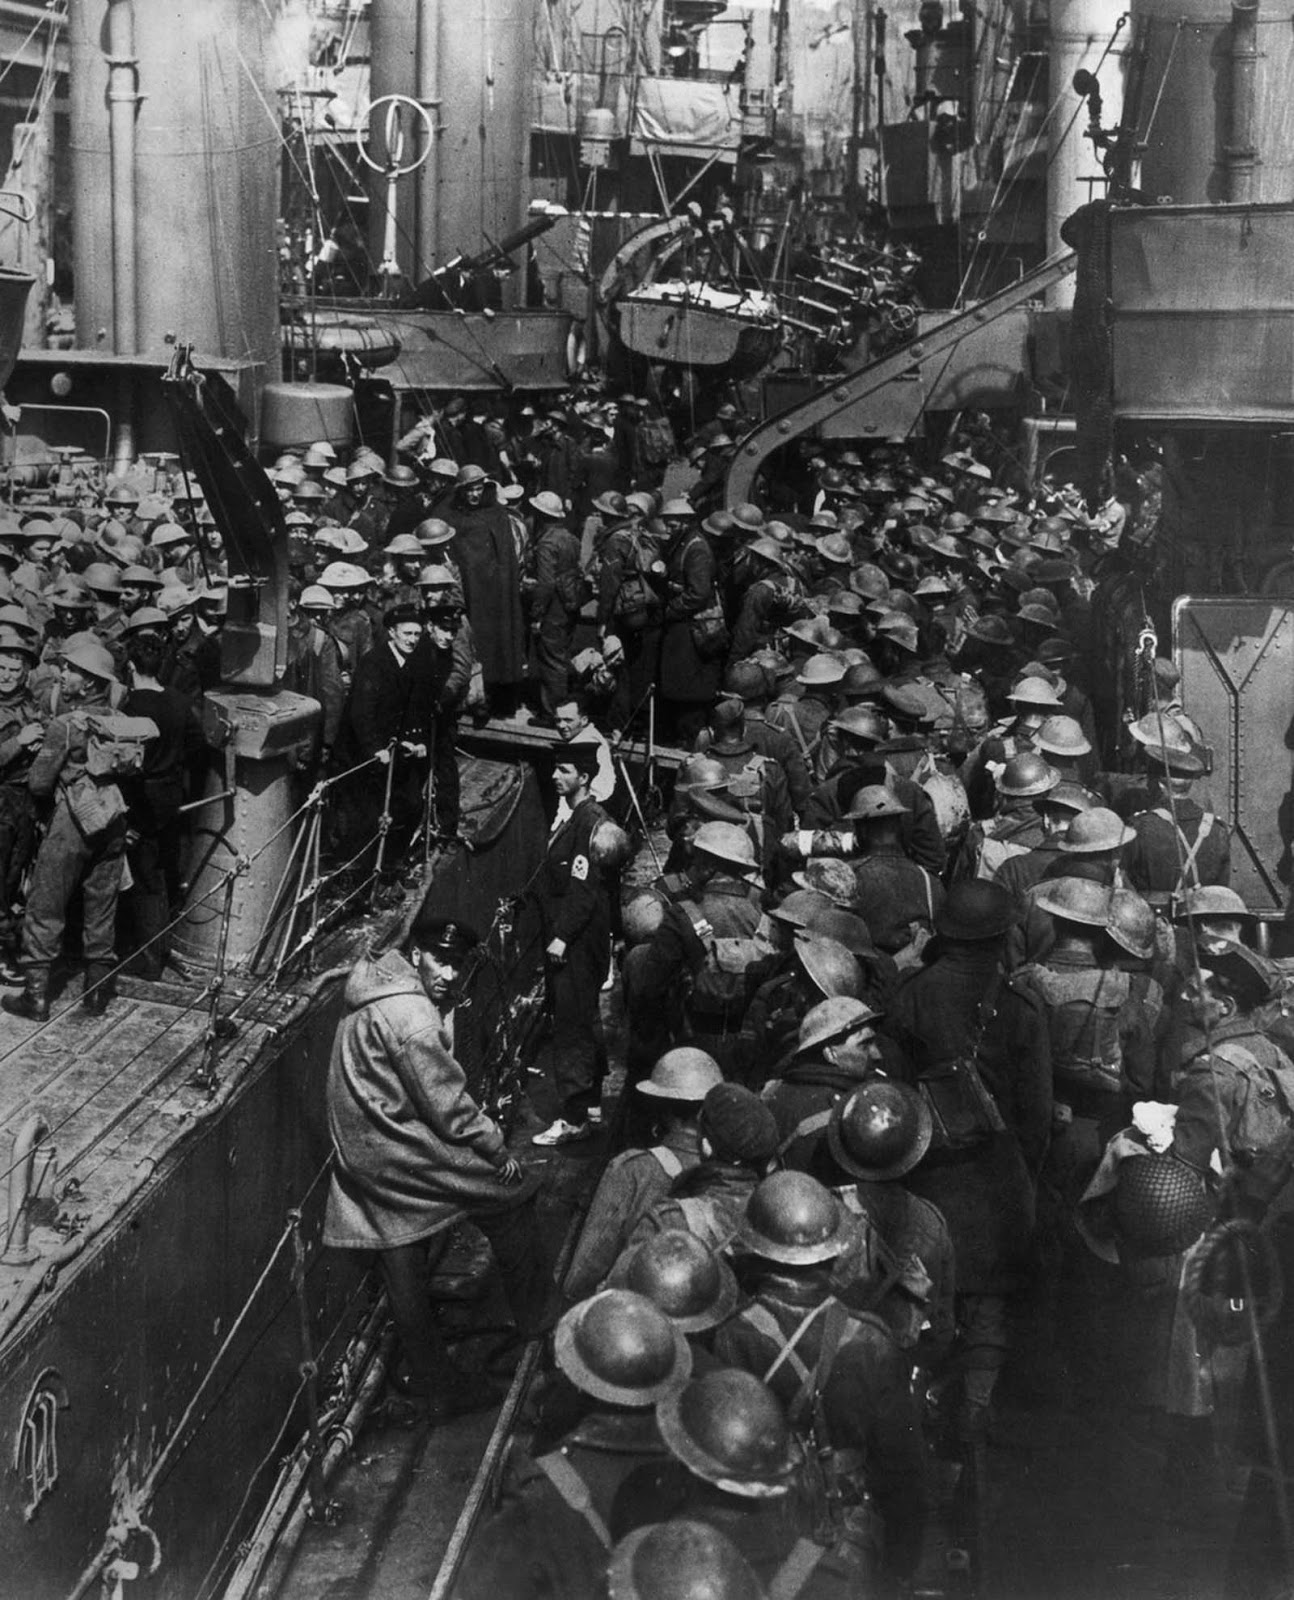 Allied troops crowd aboard ships during the evacuation of Dunkirk.